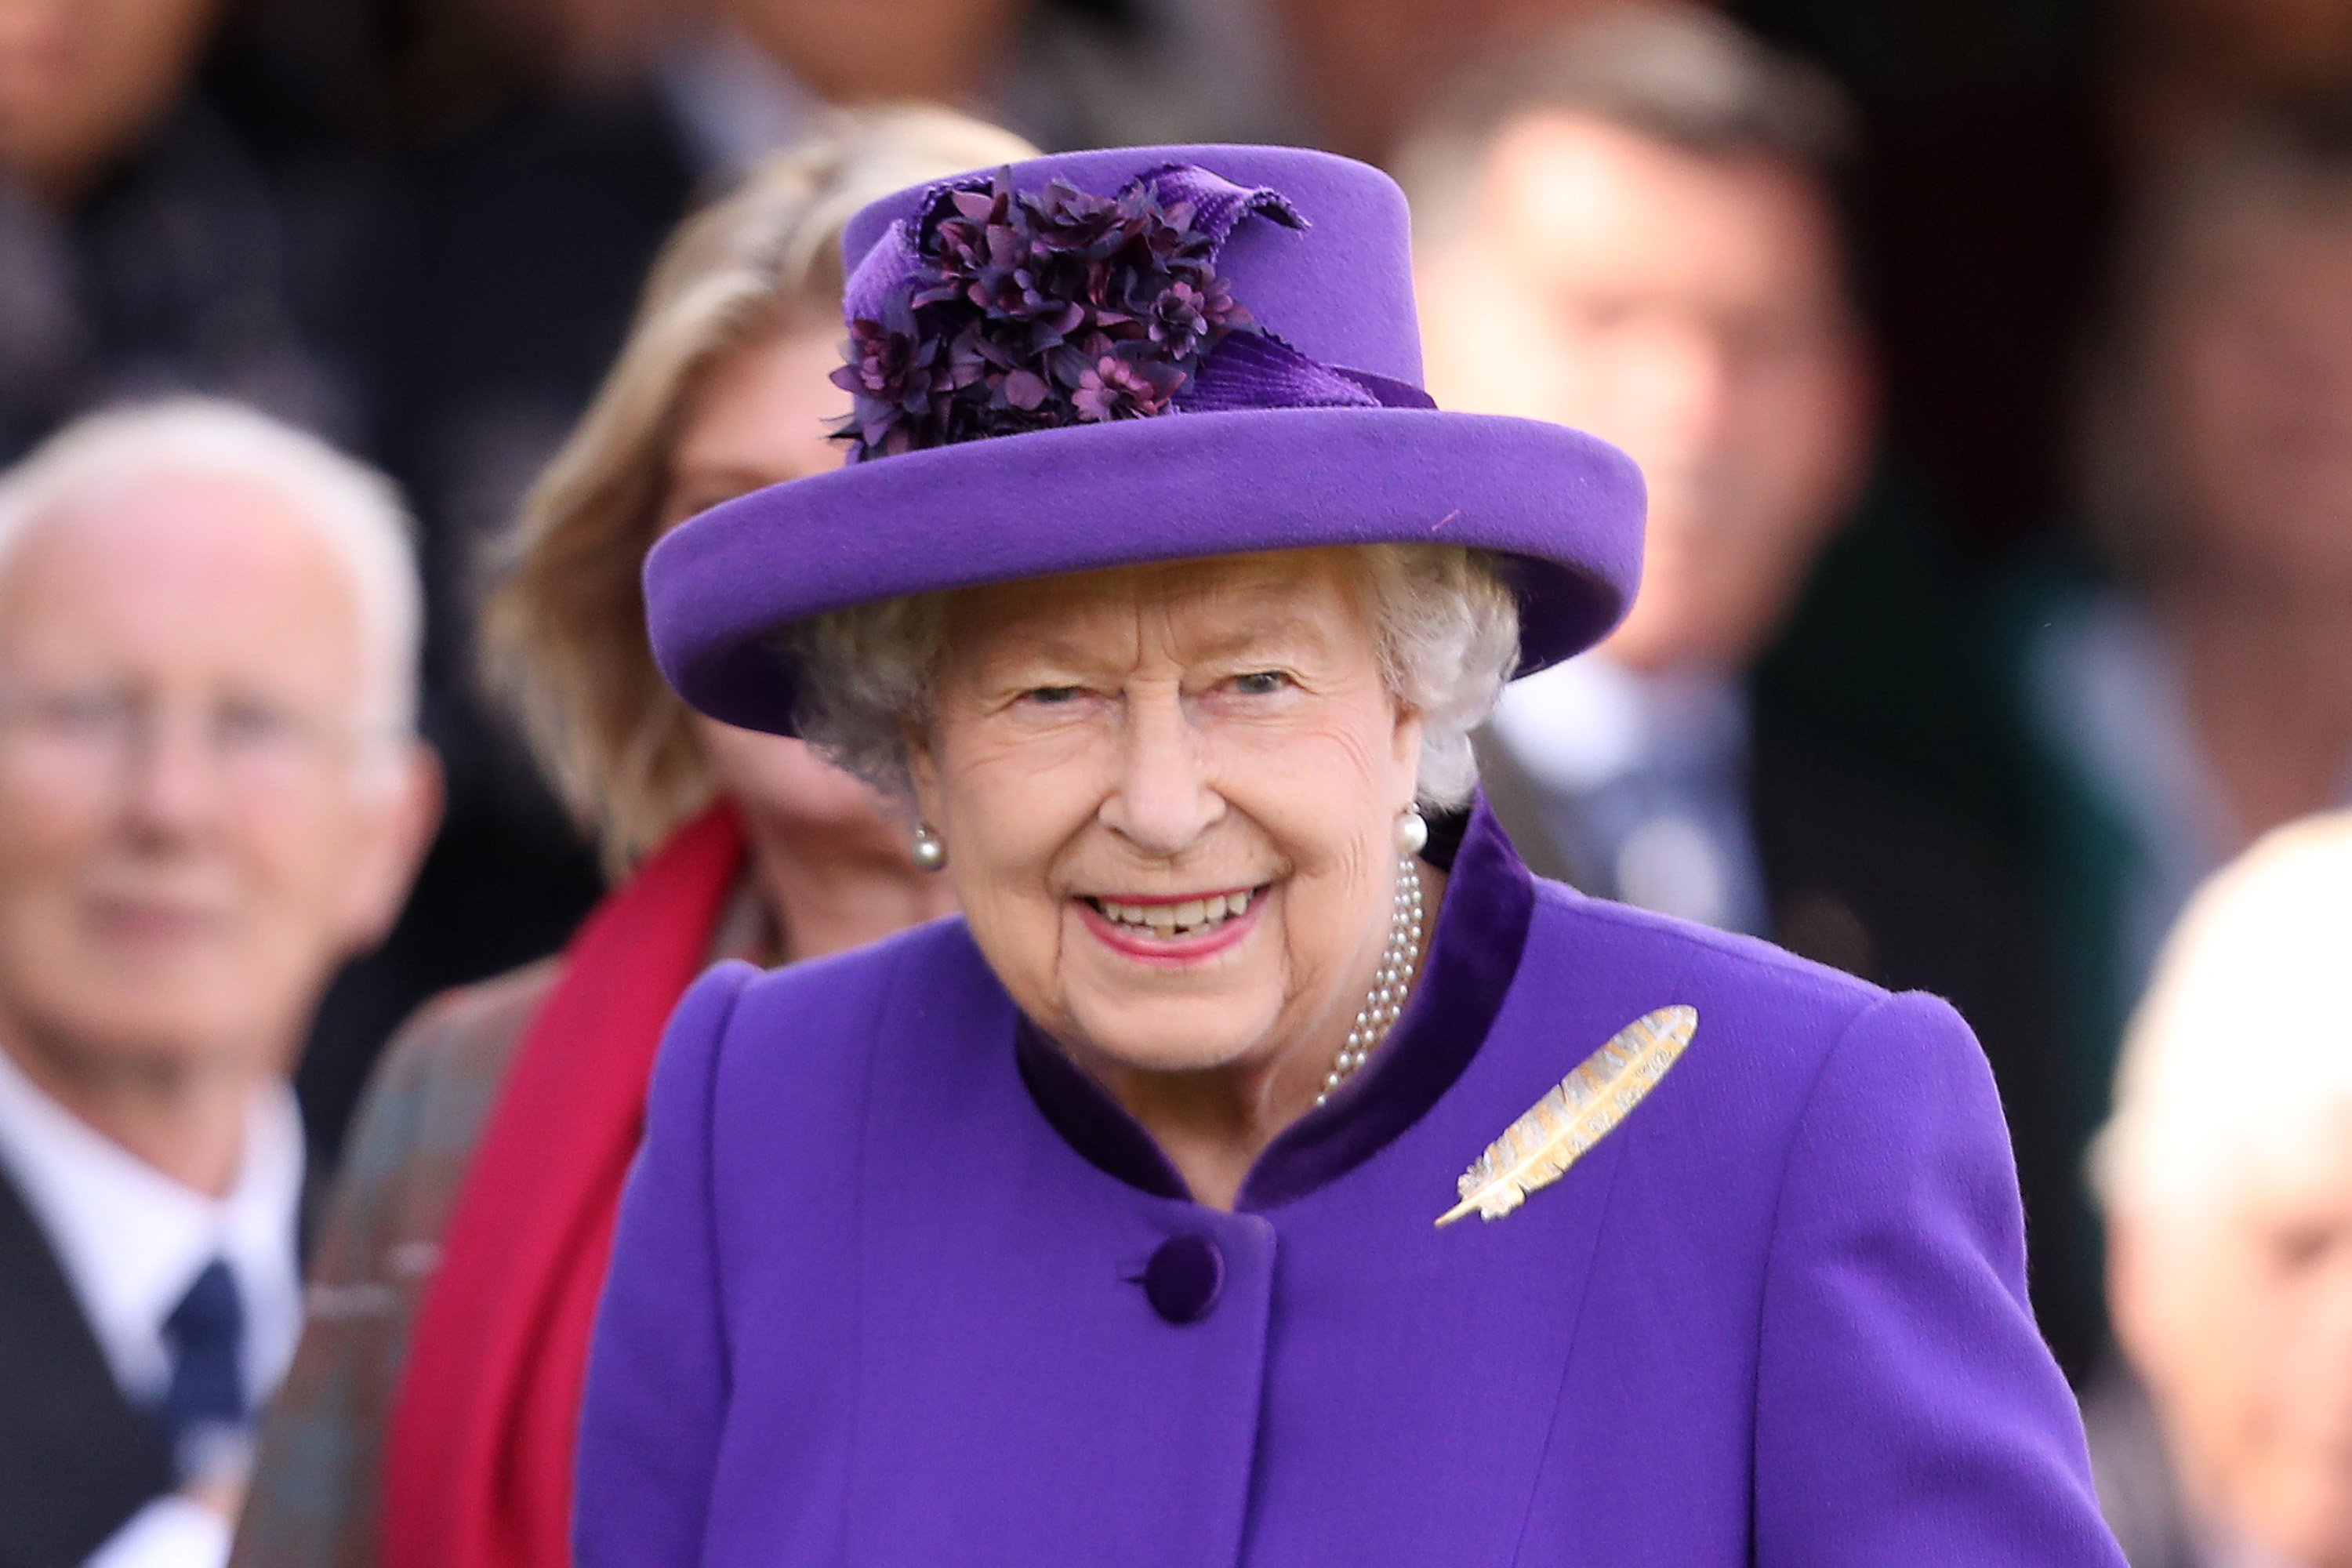 Queen Elizabeth II during the Braemar Highland Games on September 07, 2019, in Braemar, Scotland. | Source: Getty Images.